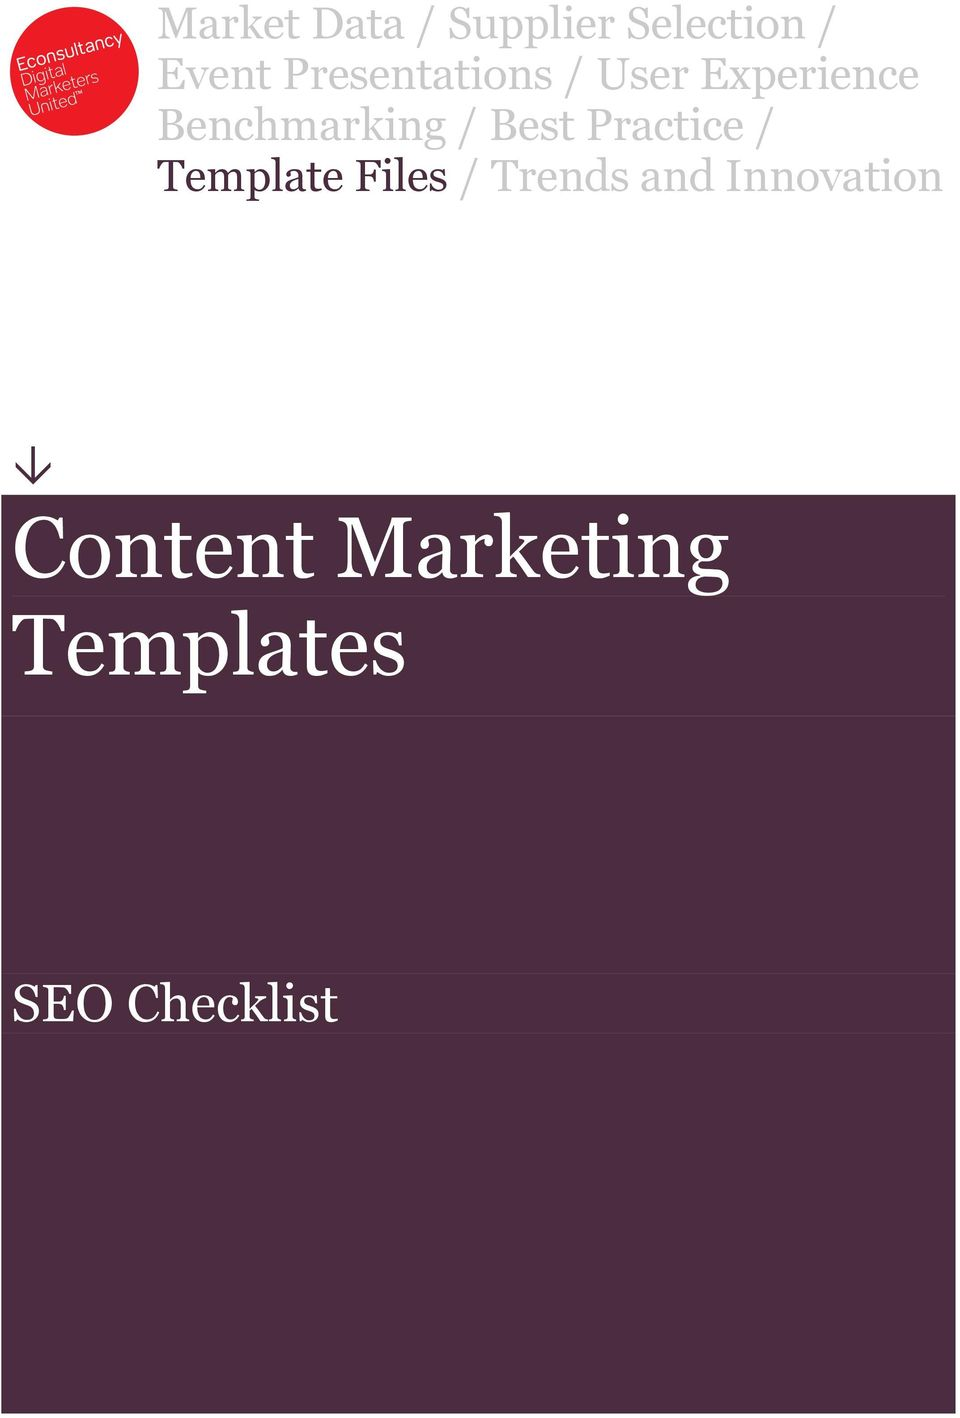 / Best Practice / Template Files / Trends and